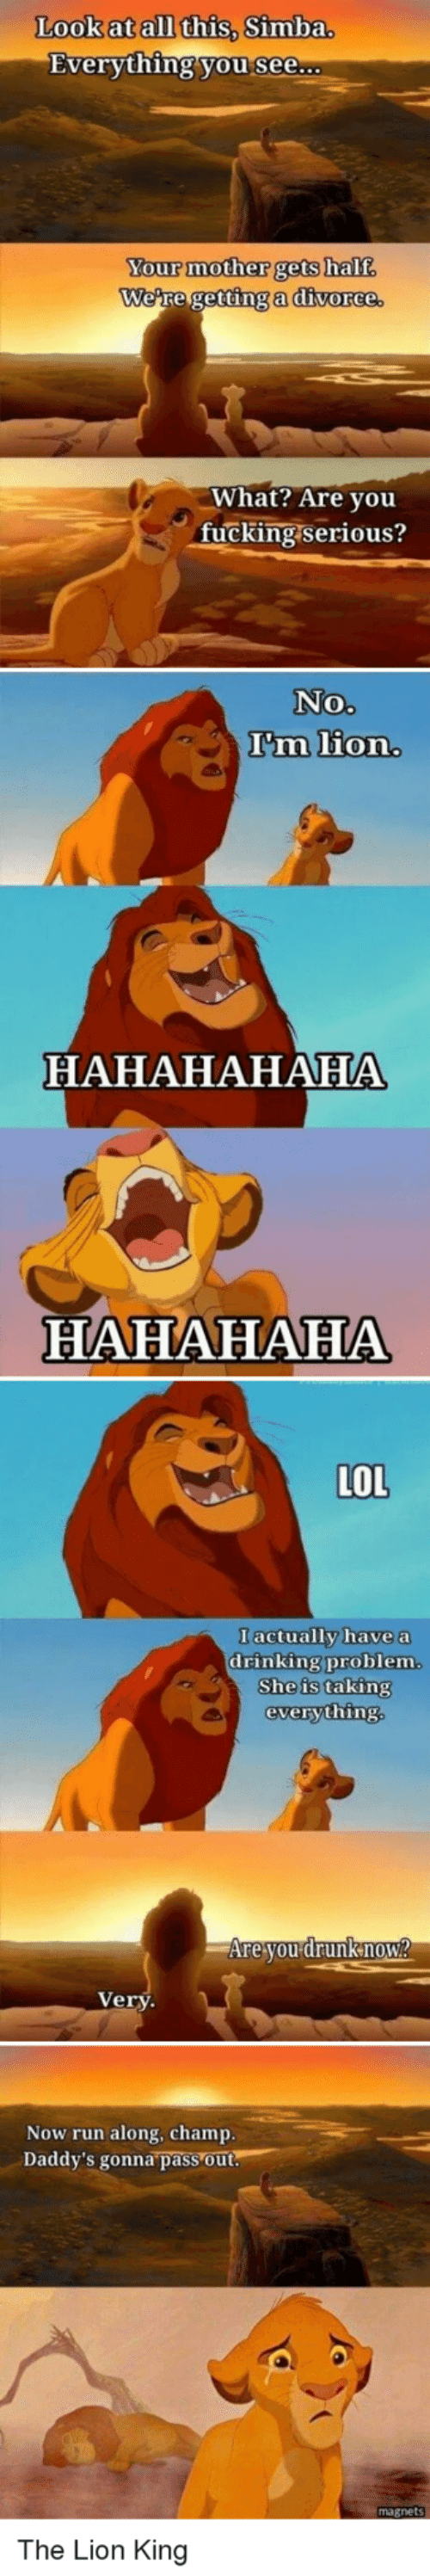 Run Along: Look at all this, Simba.  Everything you see...  Your mother gets half  We're getting a divorce.  What? Are you  fucking serious?  No.  I'm lion.  HAHAHAHAHA  HAHAHAHA  LOL  I actually have a  drinking problem.  She is taking  everything.  Are you drunknow?  Very  Now run along, champ.  Daddy's gonna pass out.  The Lion King